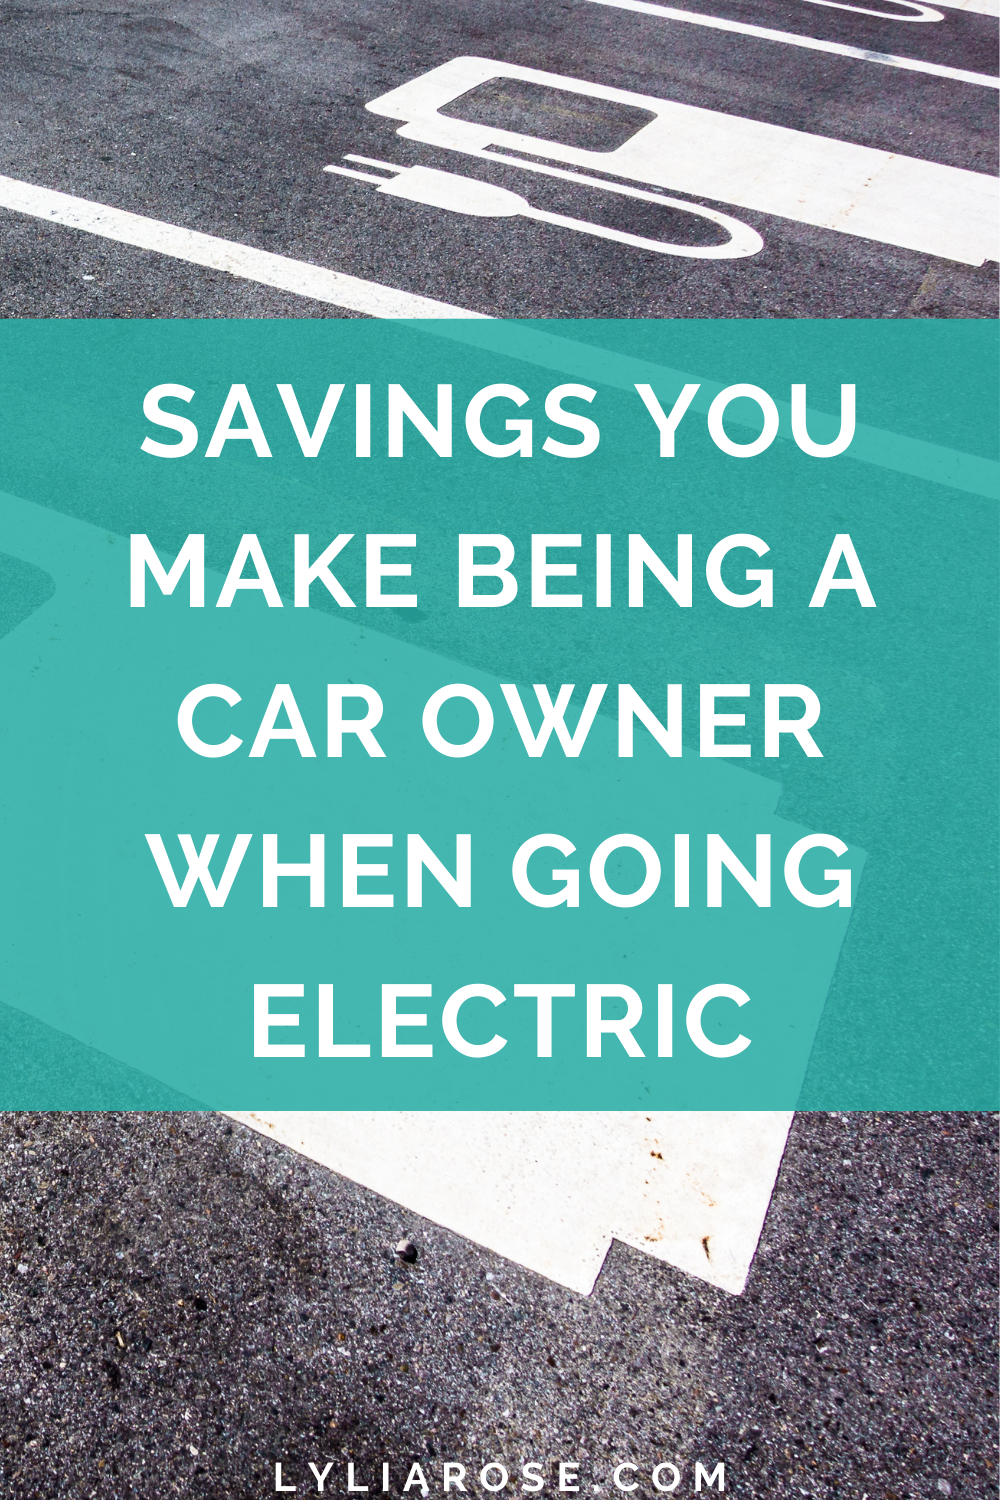 Savings you make being a car owner when going electric